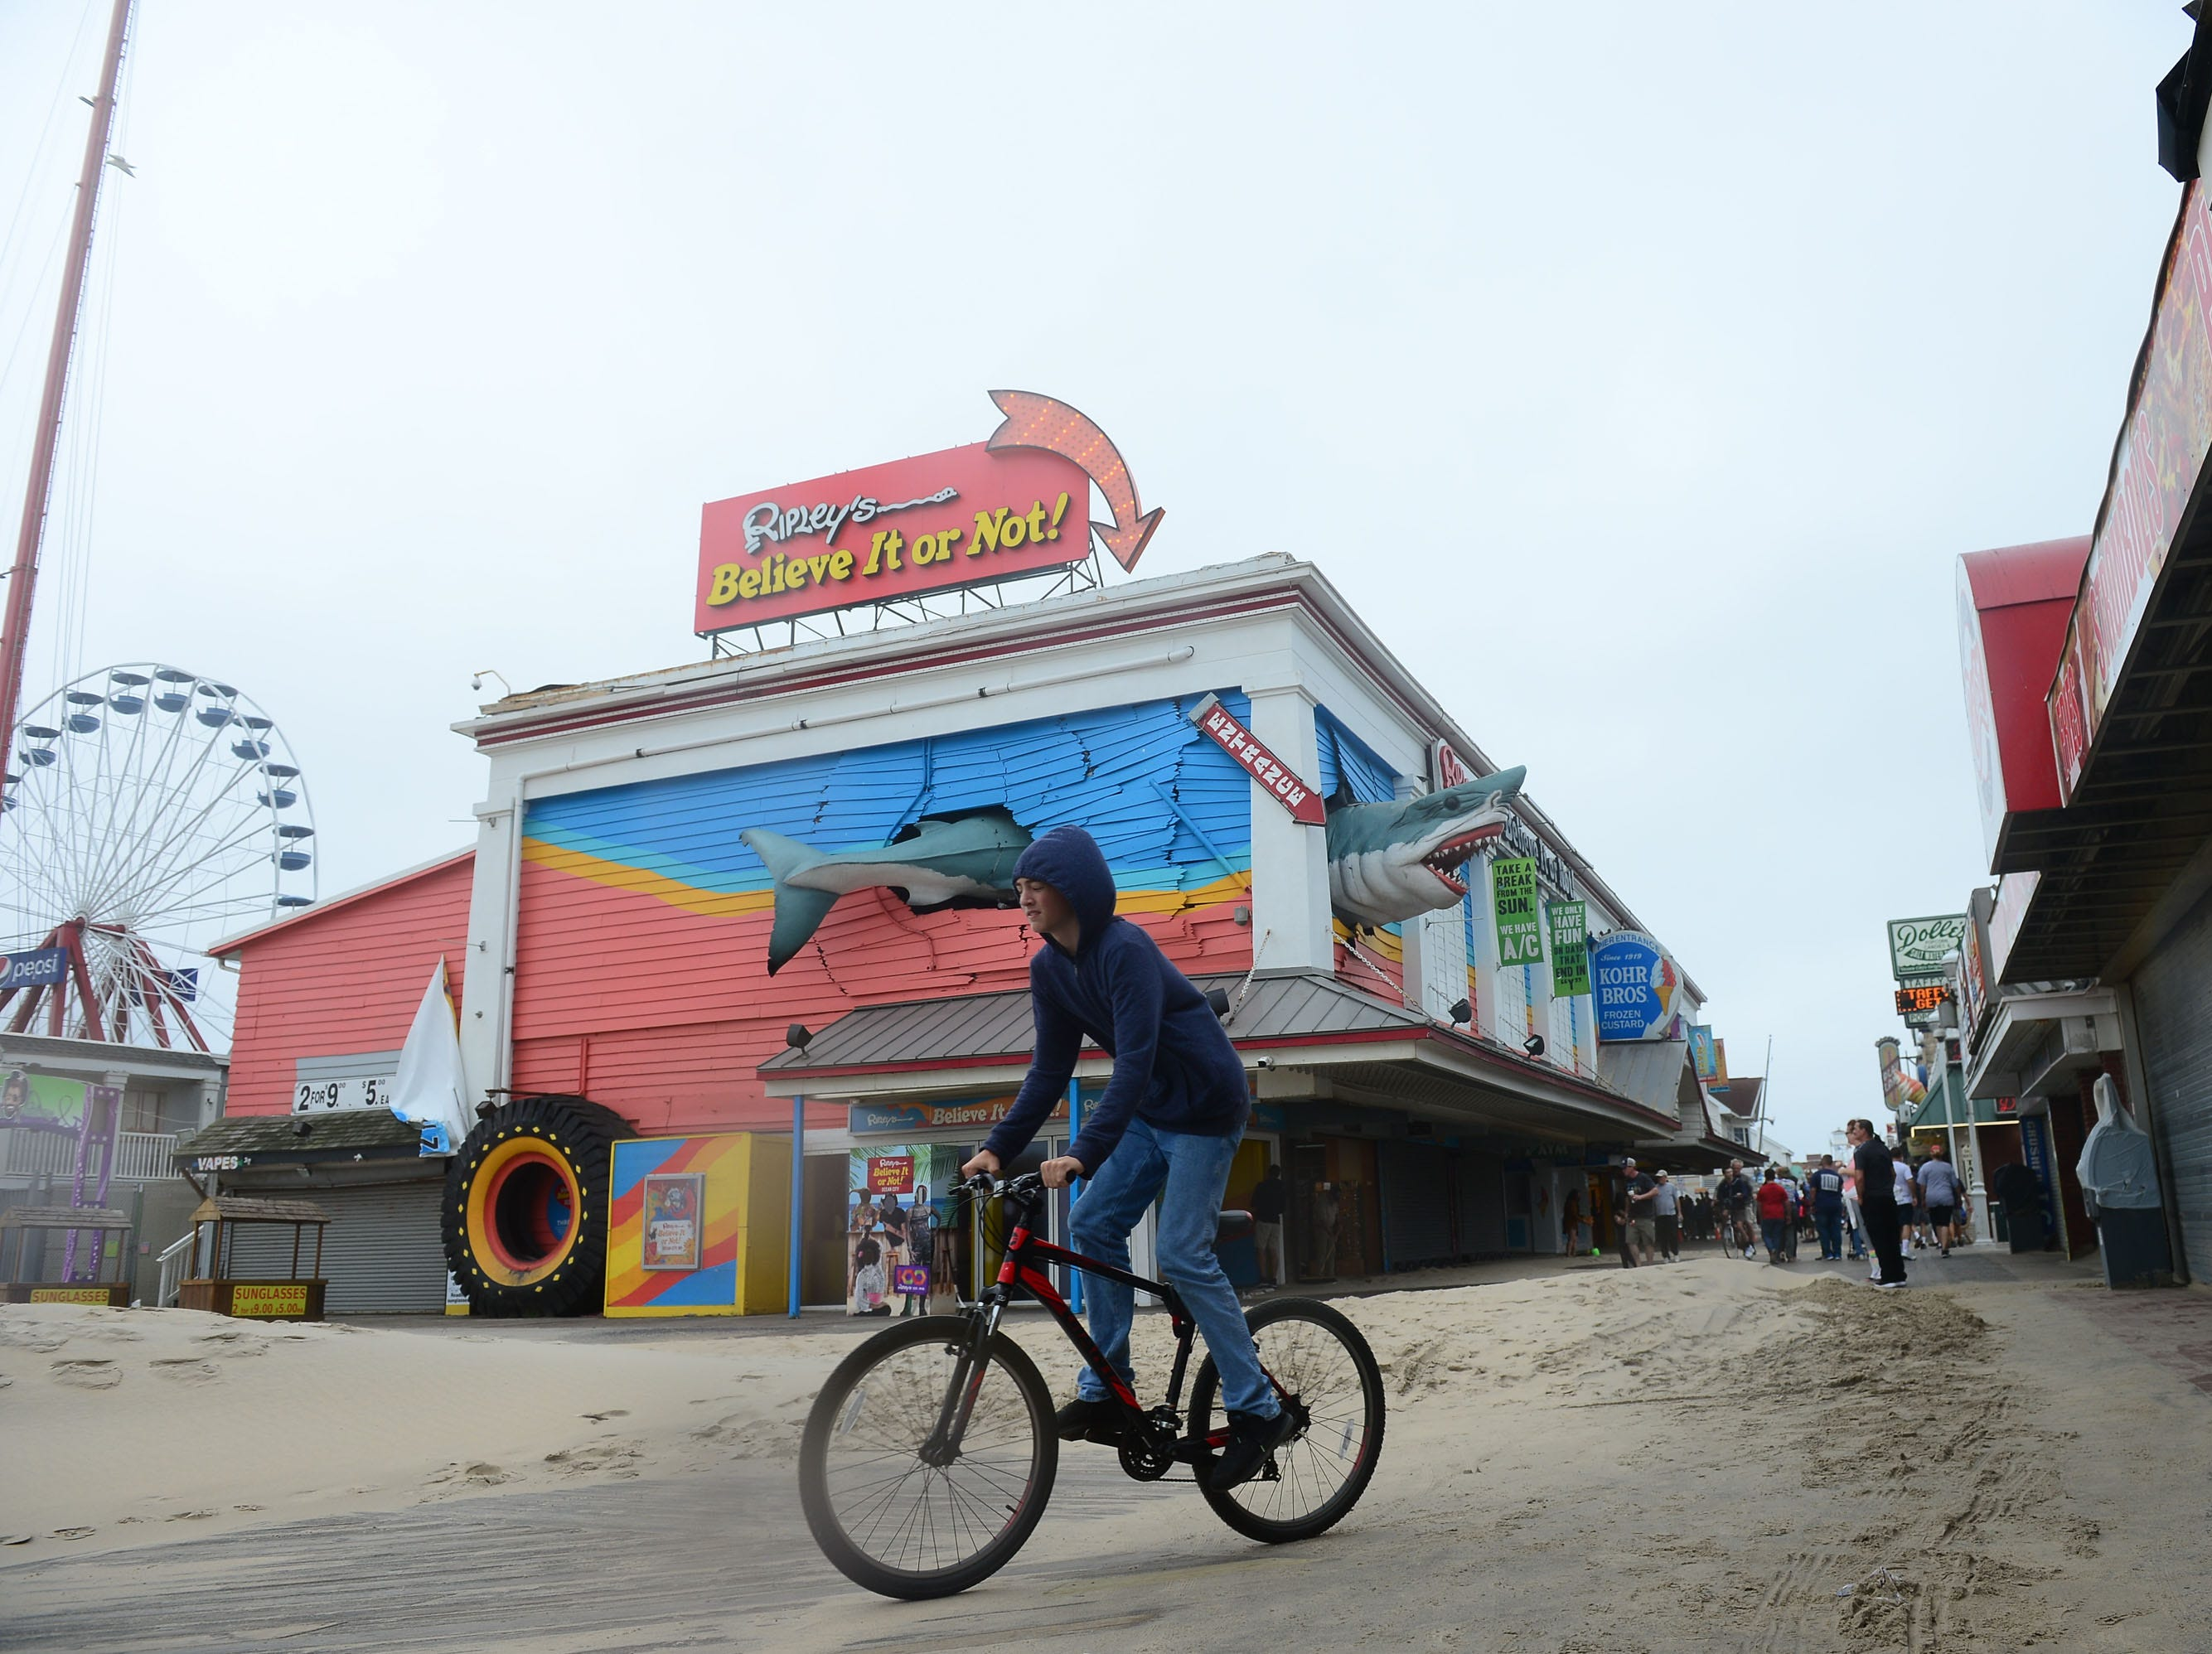 A biker rides his bike down the boardwalk over large amounts of sand on Monday, Sept. 10, 2018 in Ocean City, Md.